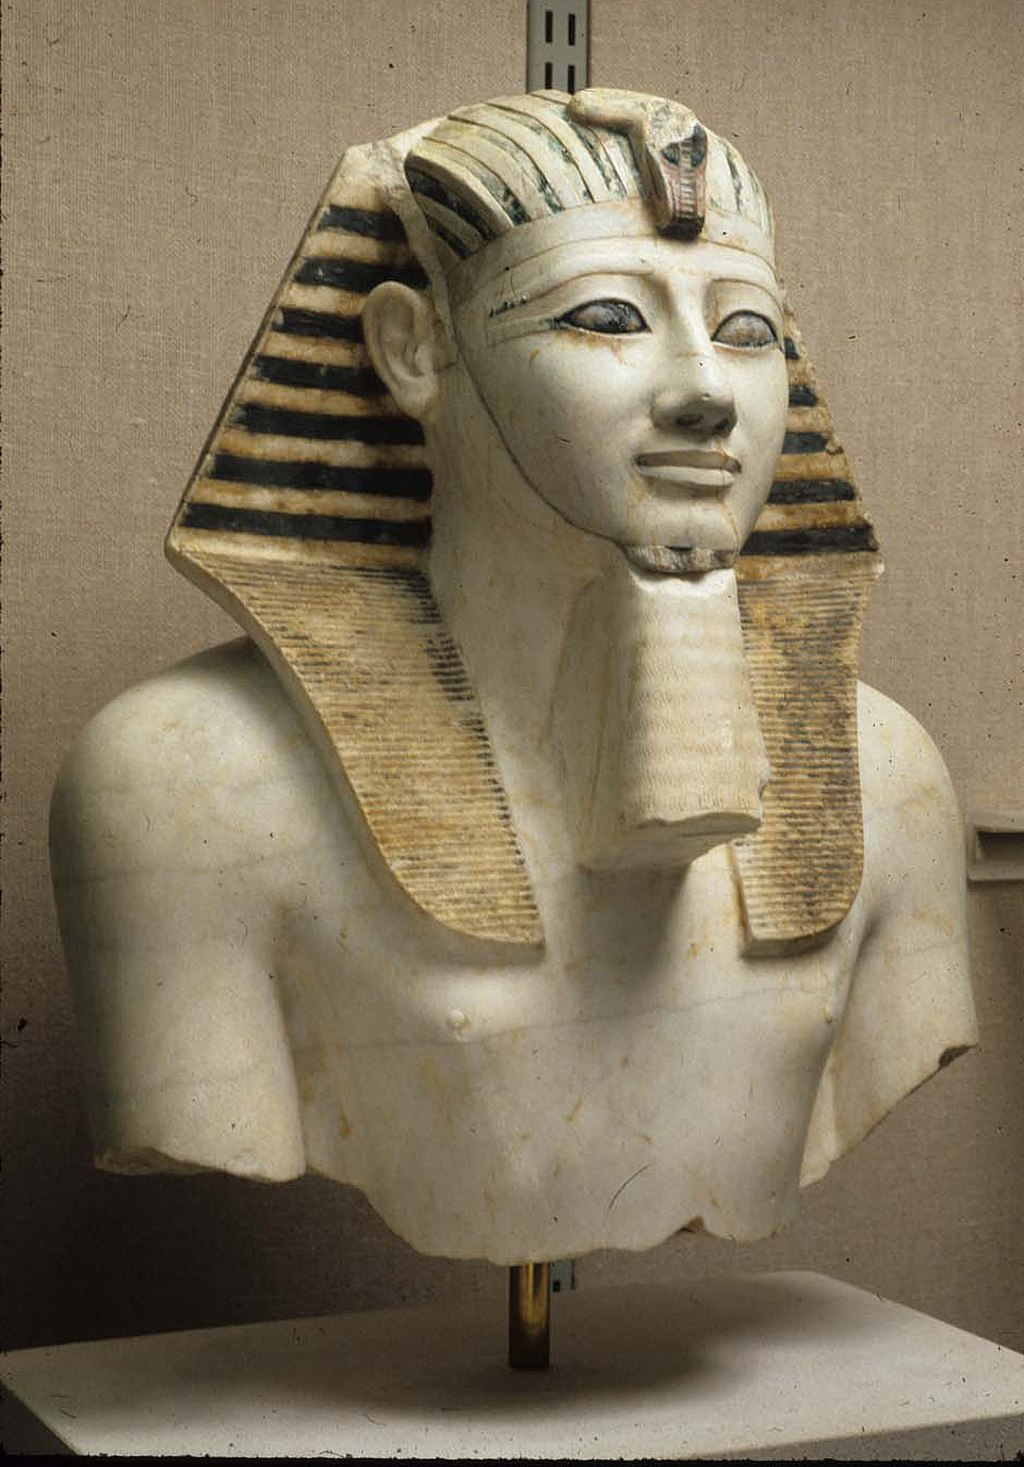 Thutmose III was only a toddler when he became pharaoh, so Hatshepsut reigned as his regent